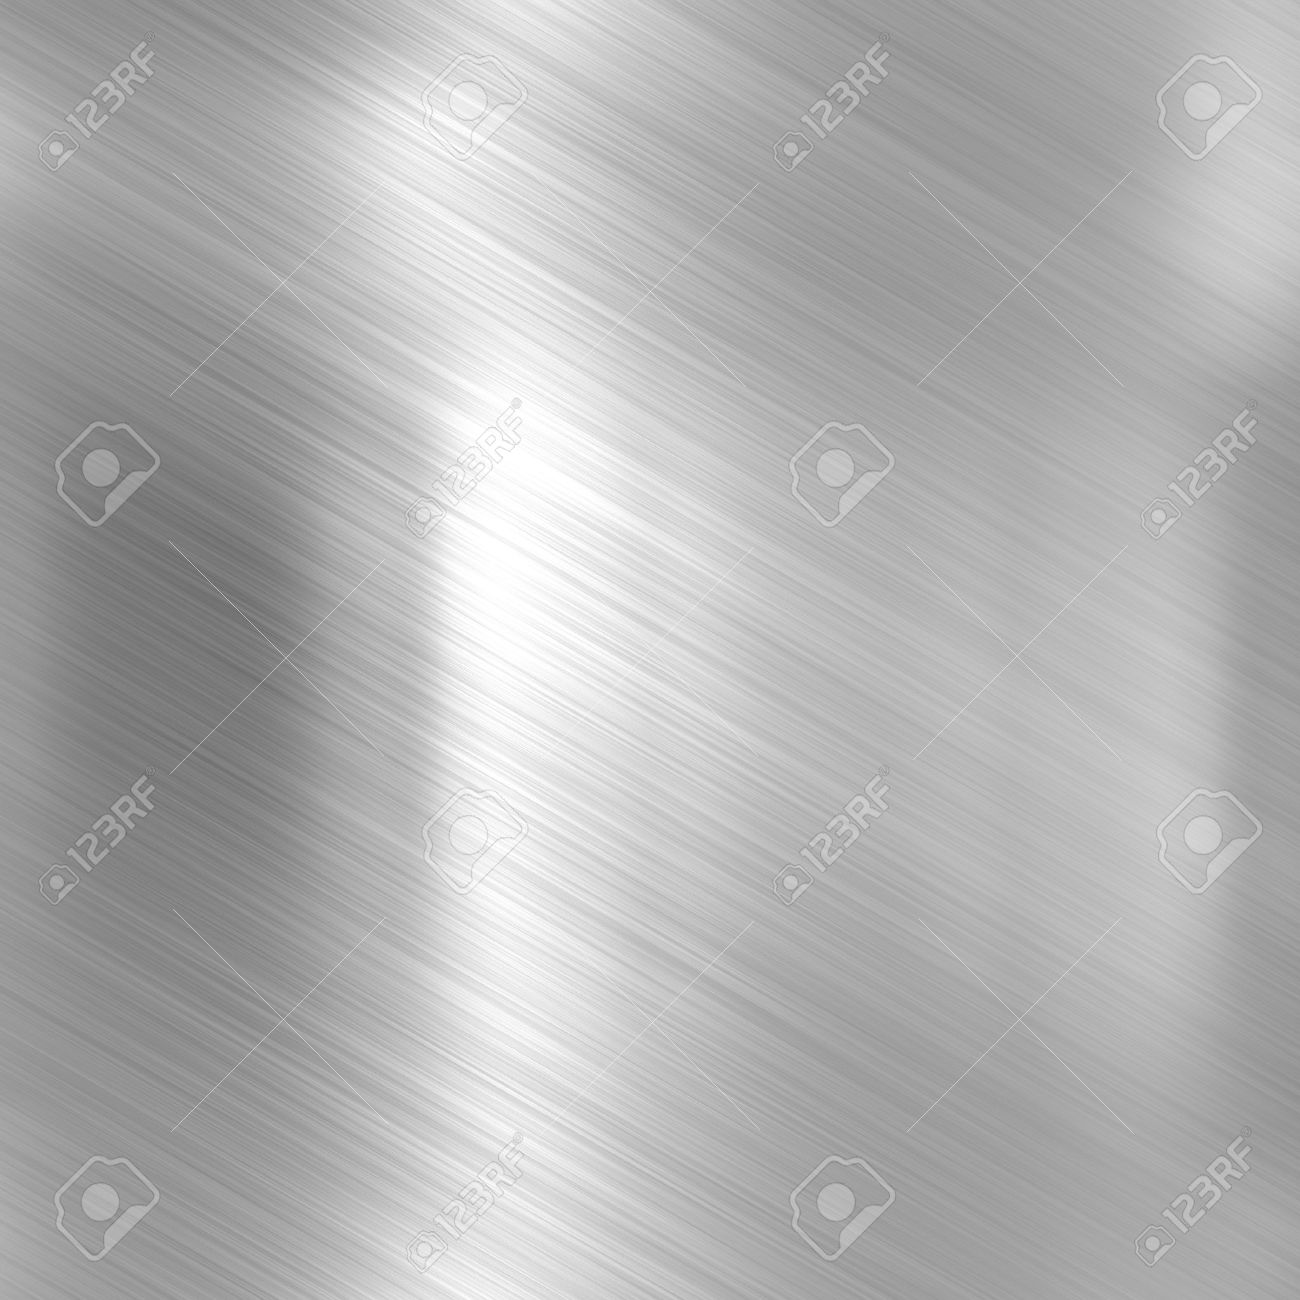 Metal background or texture of bright aluminum sheet Stock Photo - 19841757